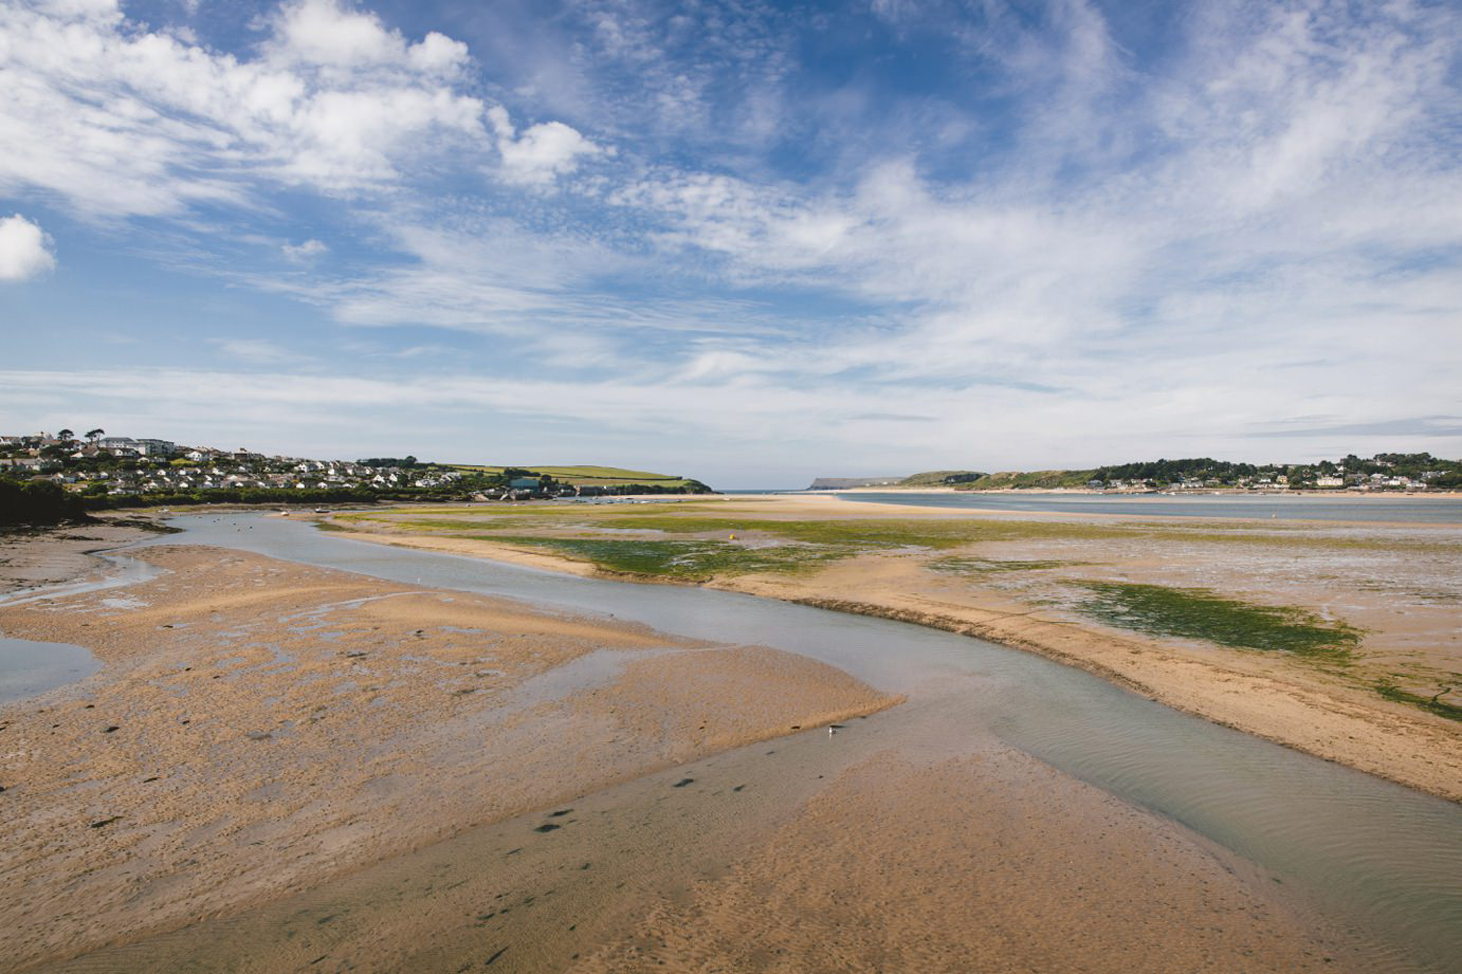 cornwall padstow st ives travel photography saran ann wright 029